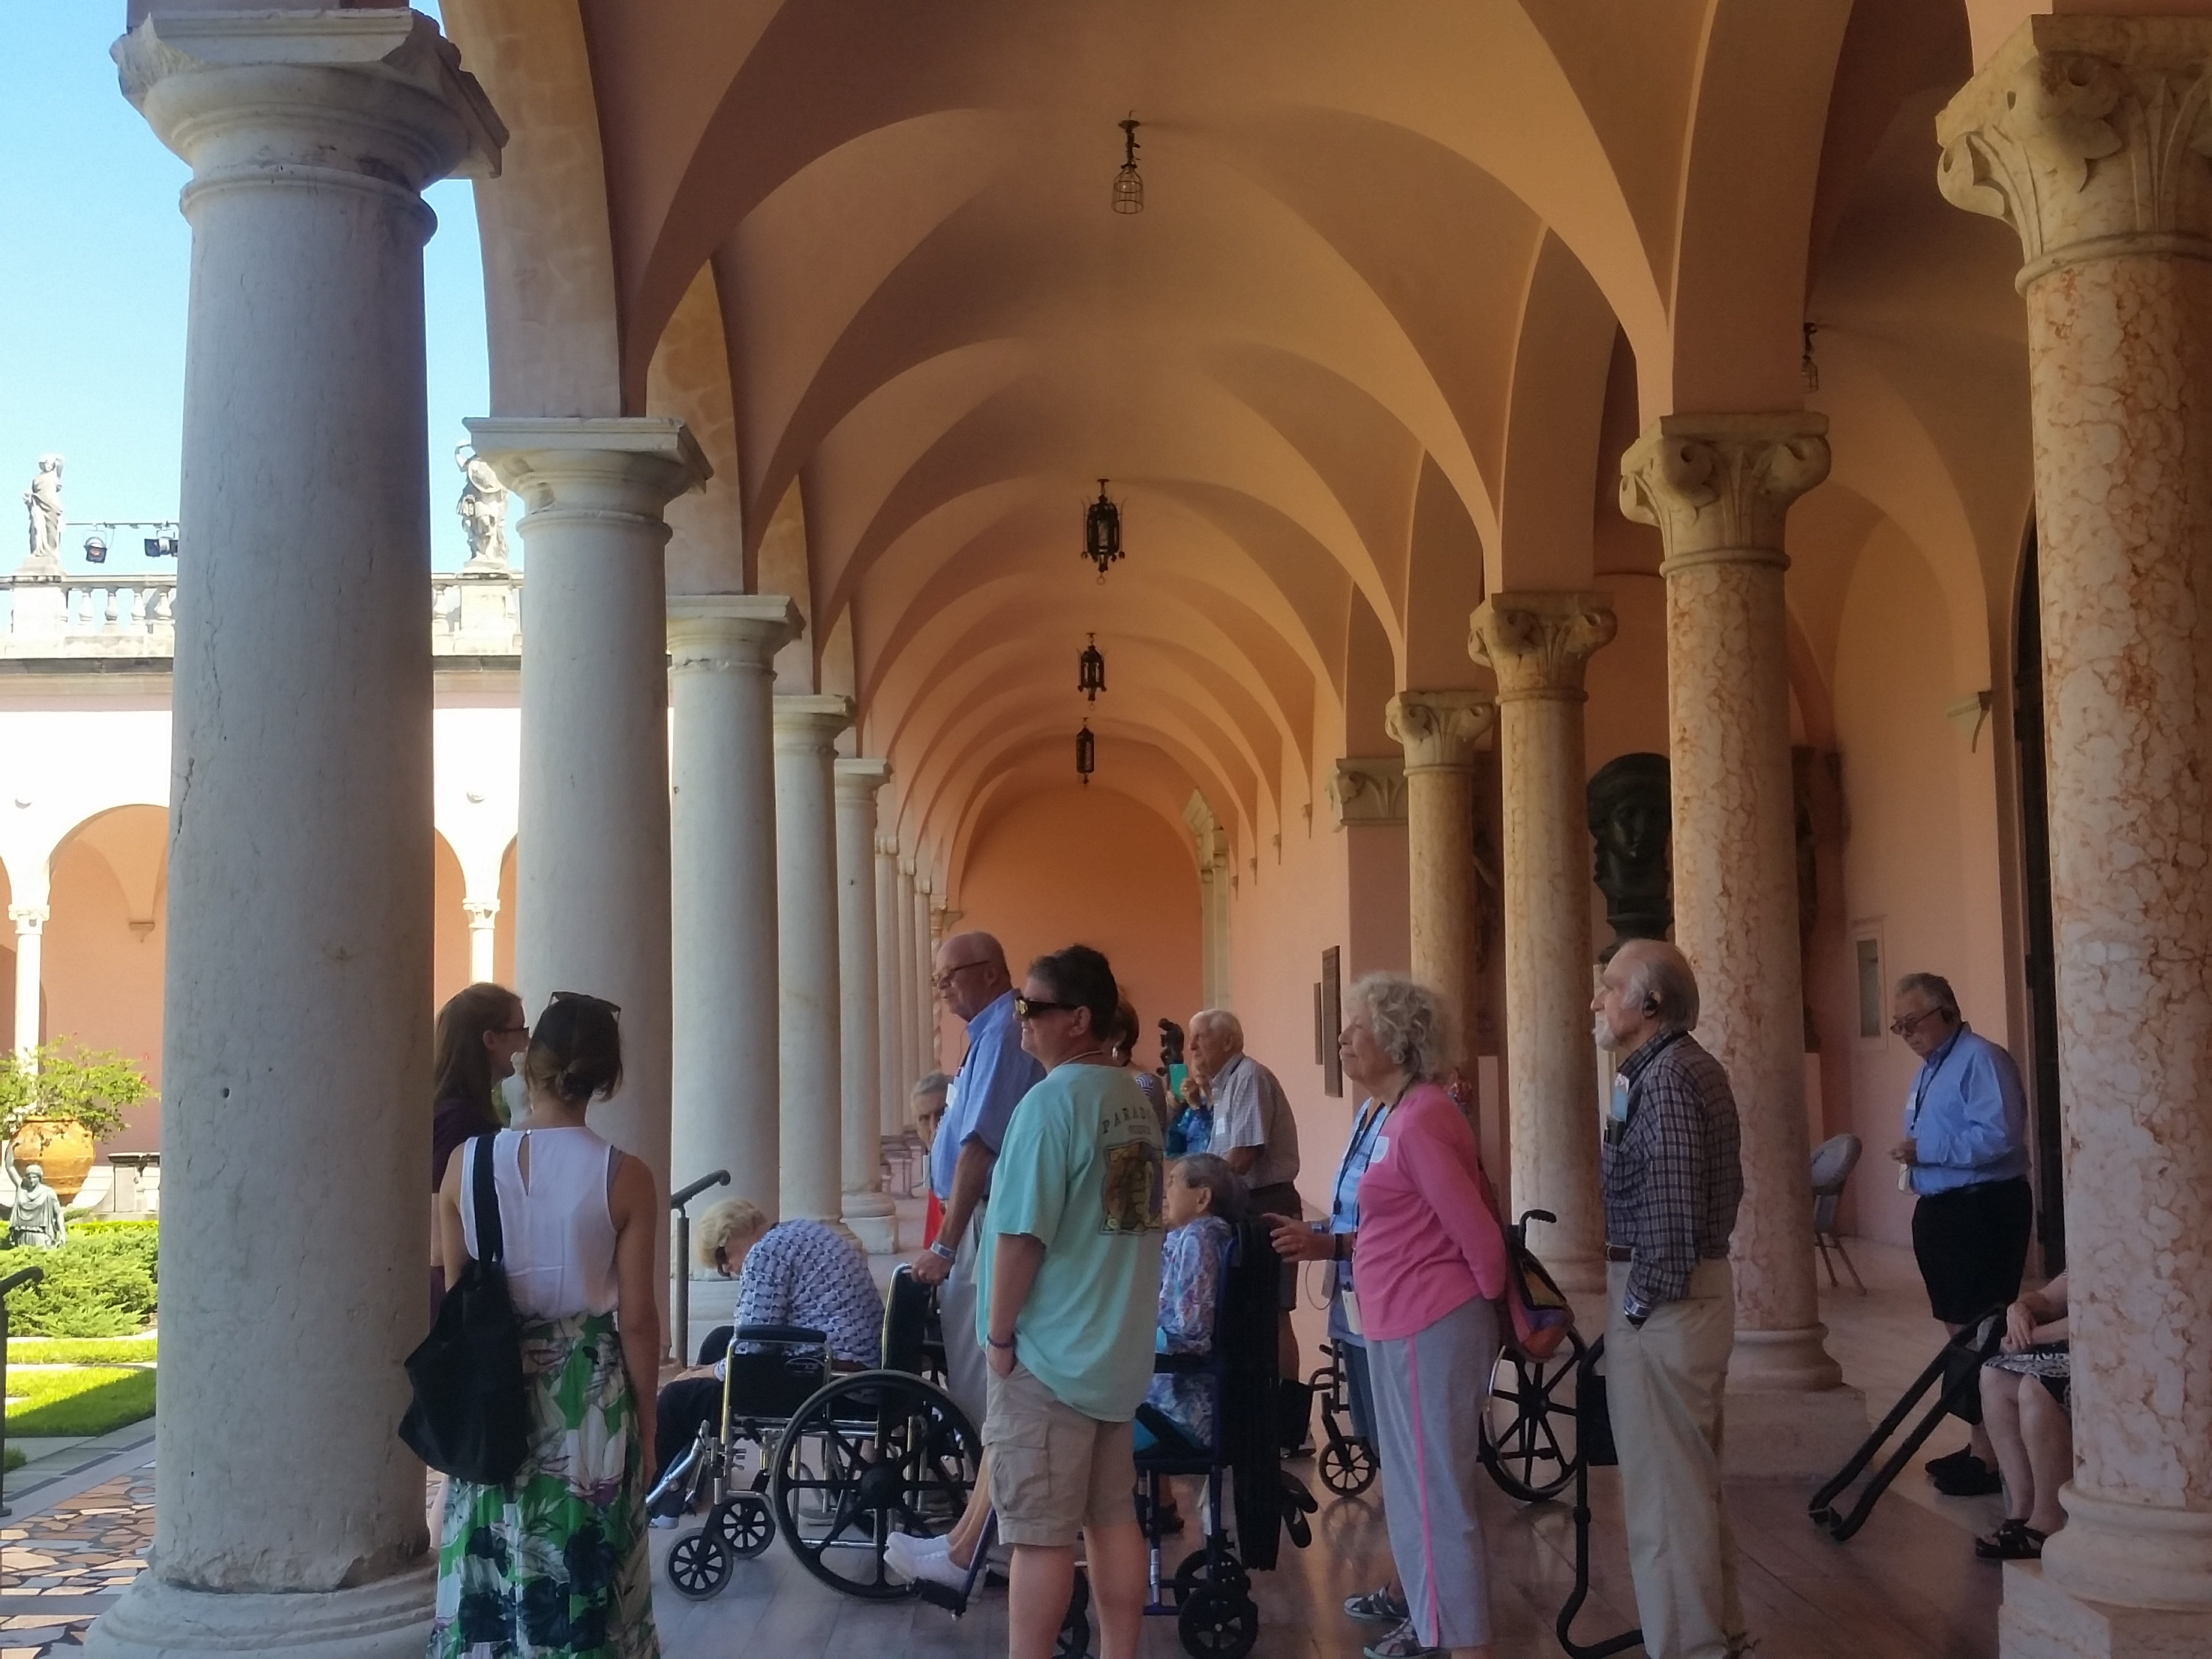 Tour Group in the Museum of Art Courtyard at The Ringling, Some people using wheelchairs and listening devices